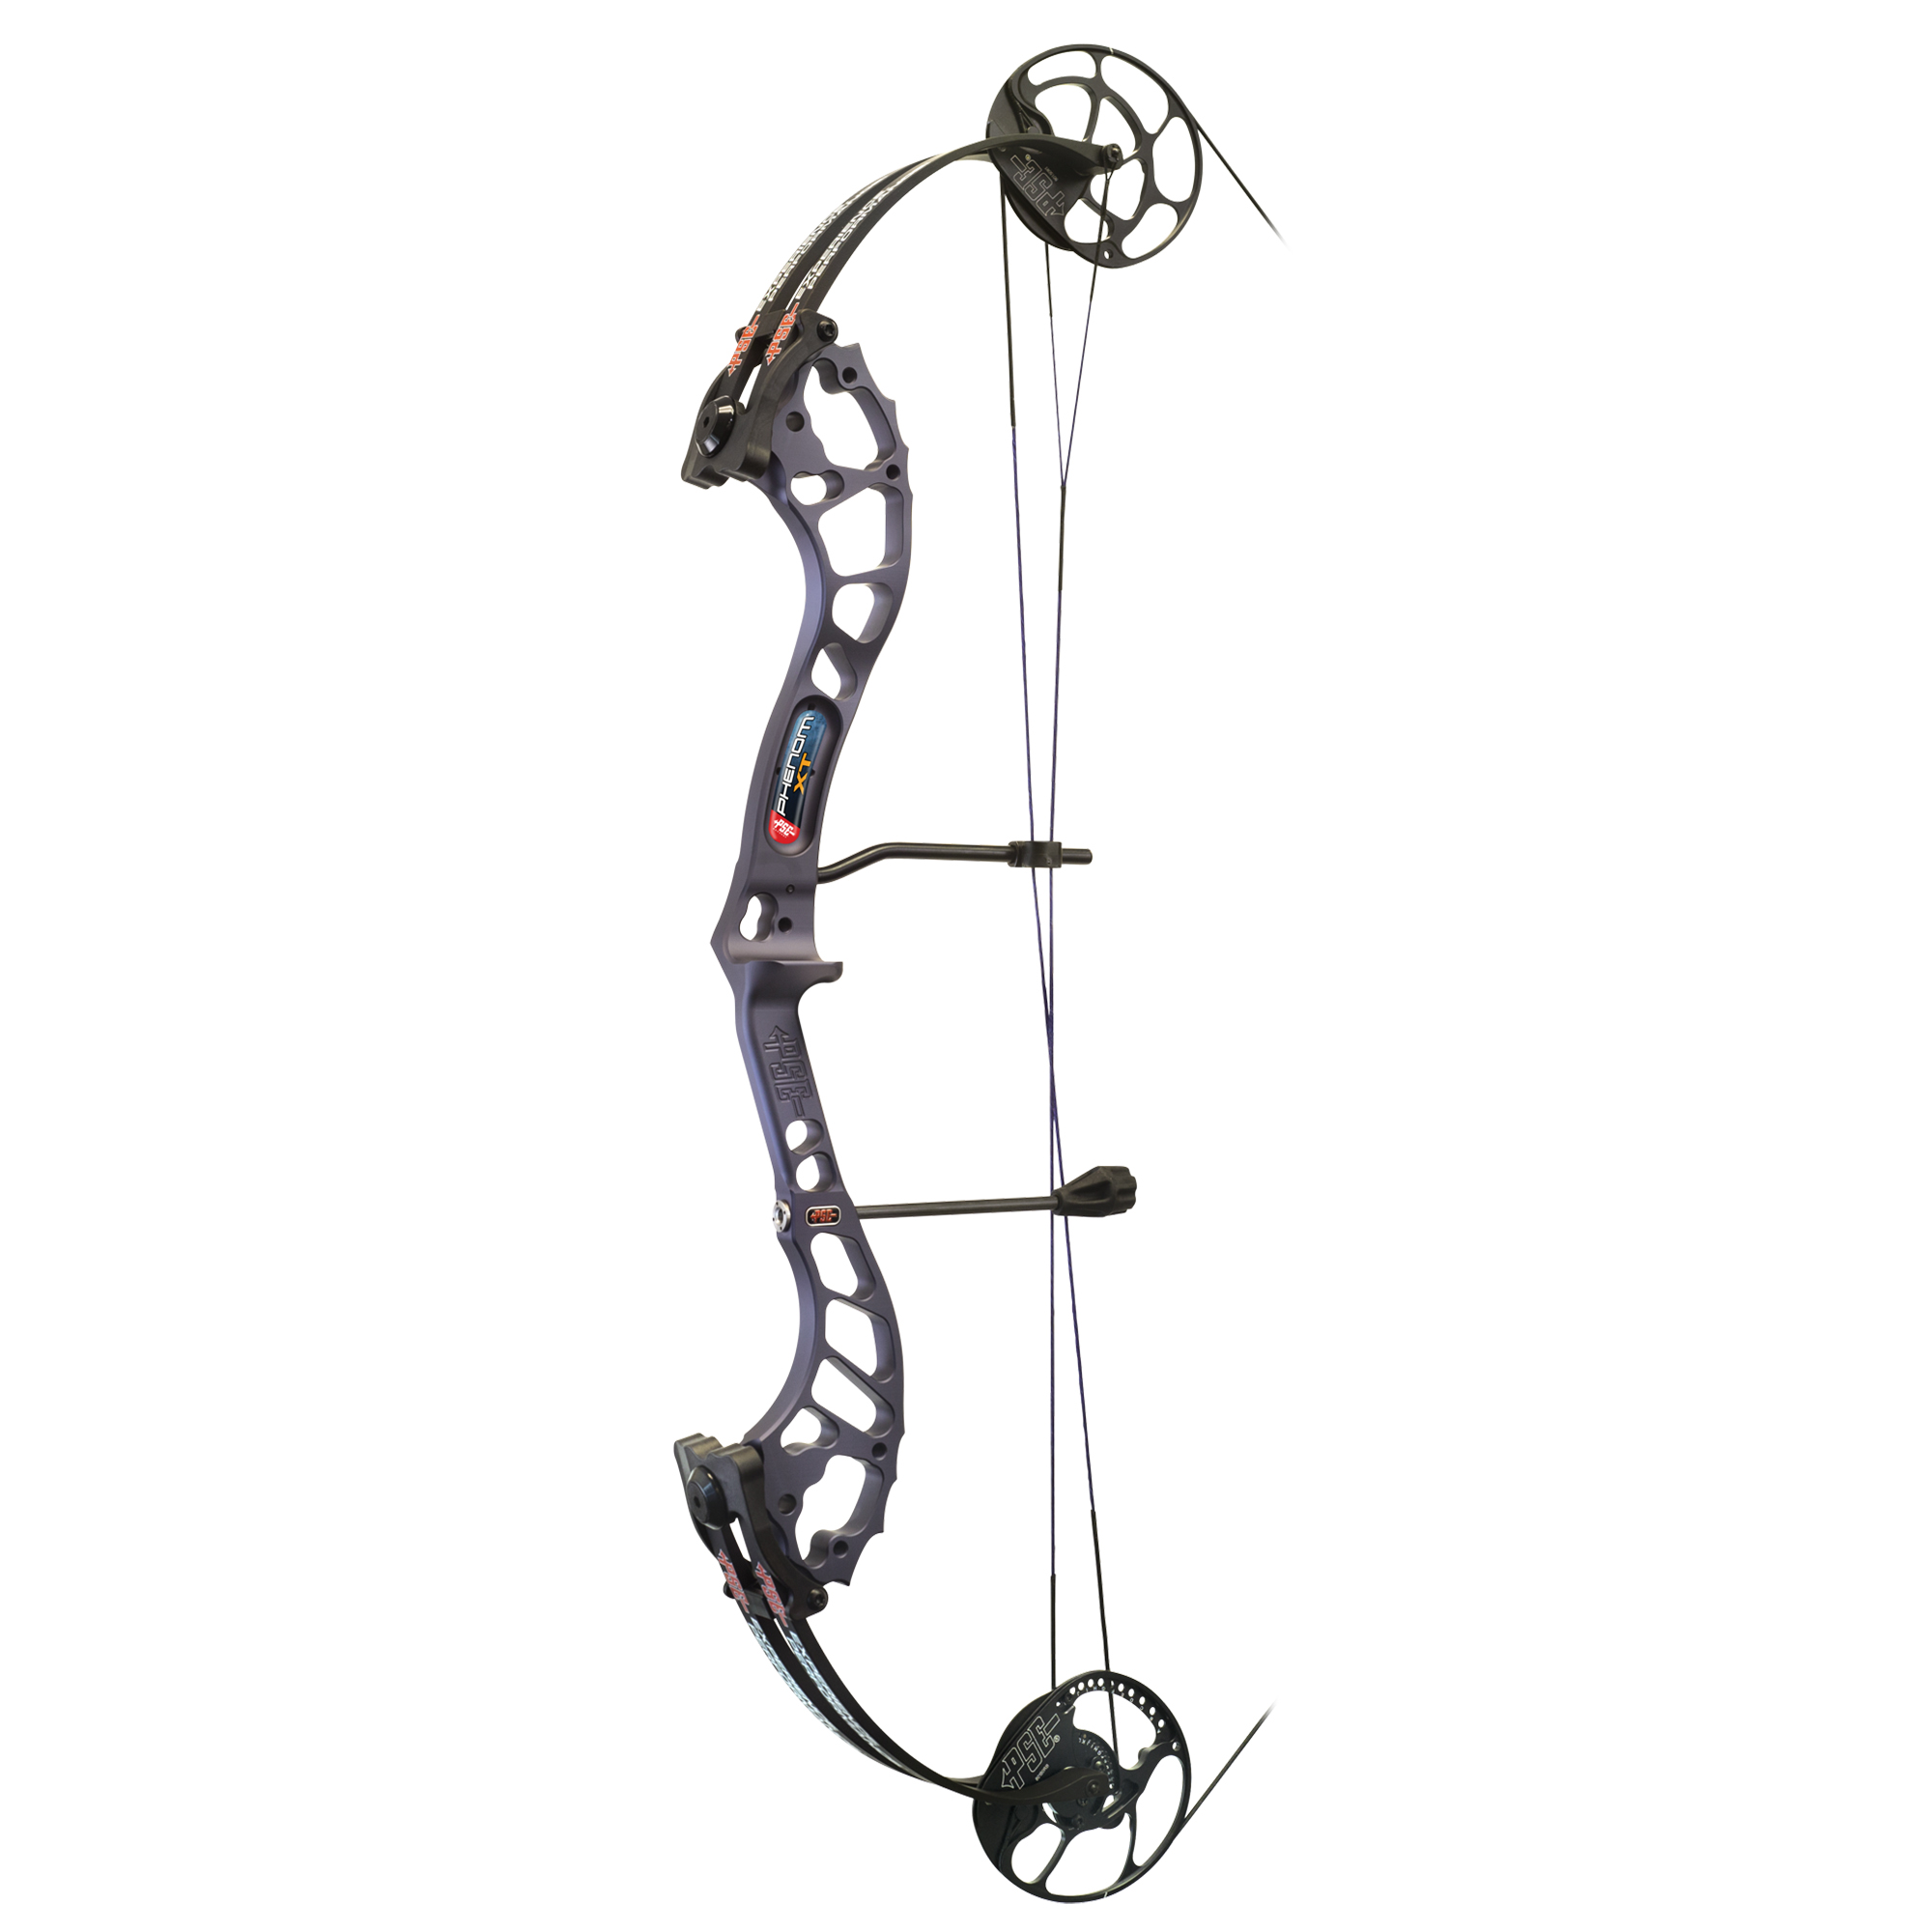 PSE PHEMON XT Bow- Special Order only